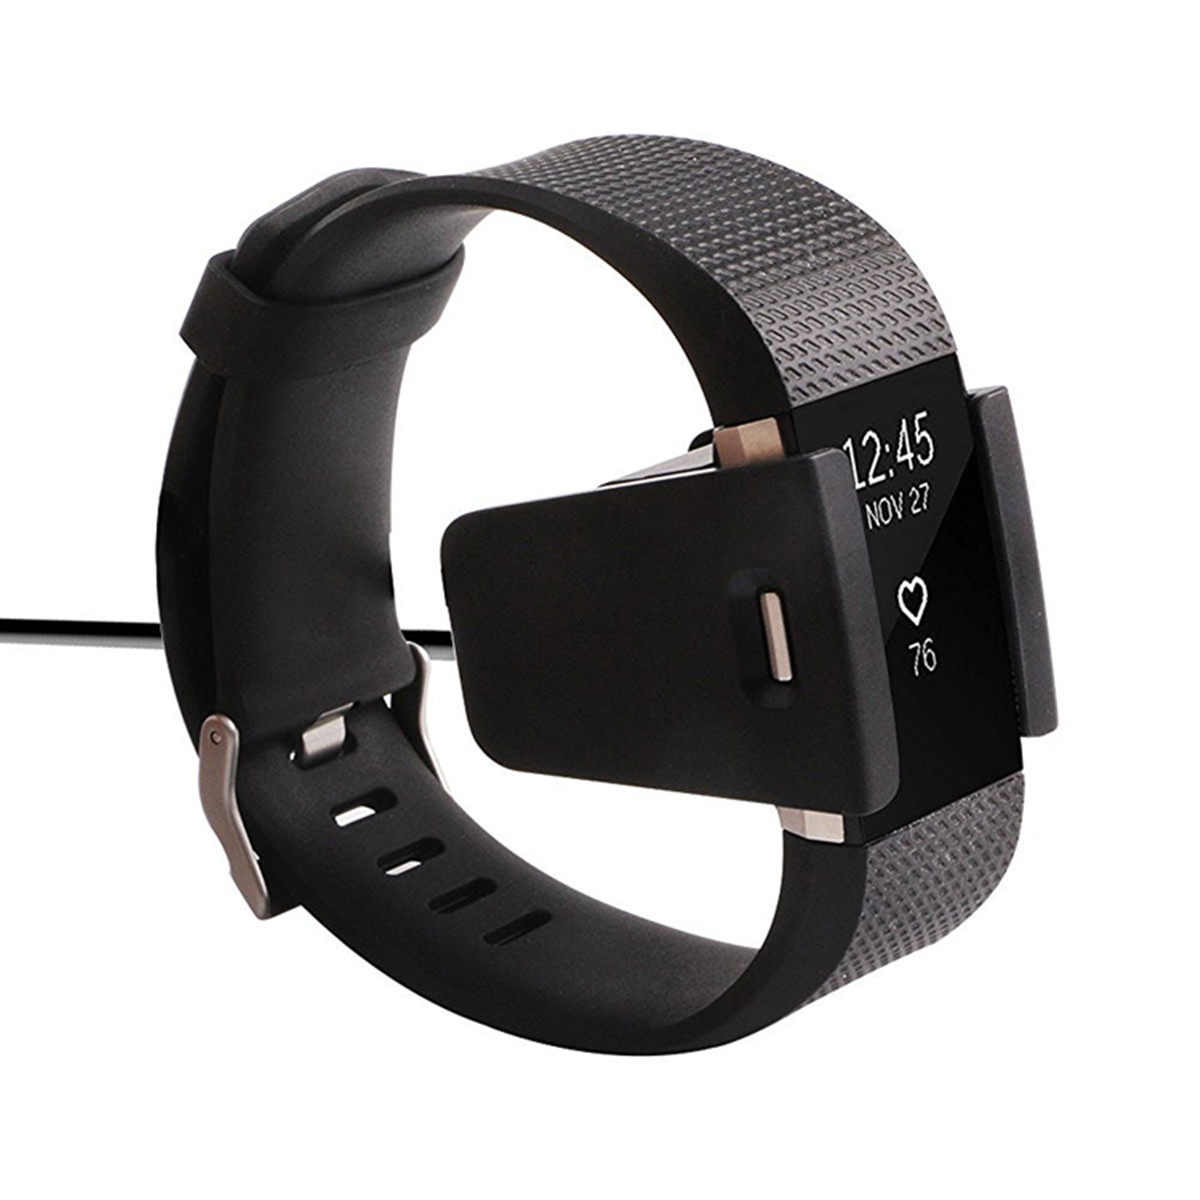 Replacement Adapter Bracelet Wristband USB Charging Cable For Fitbit Charge 2